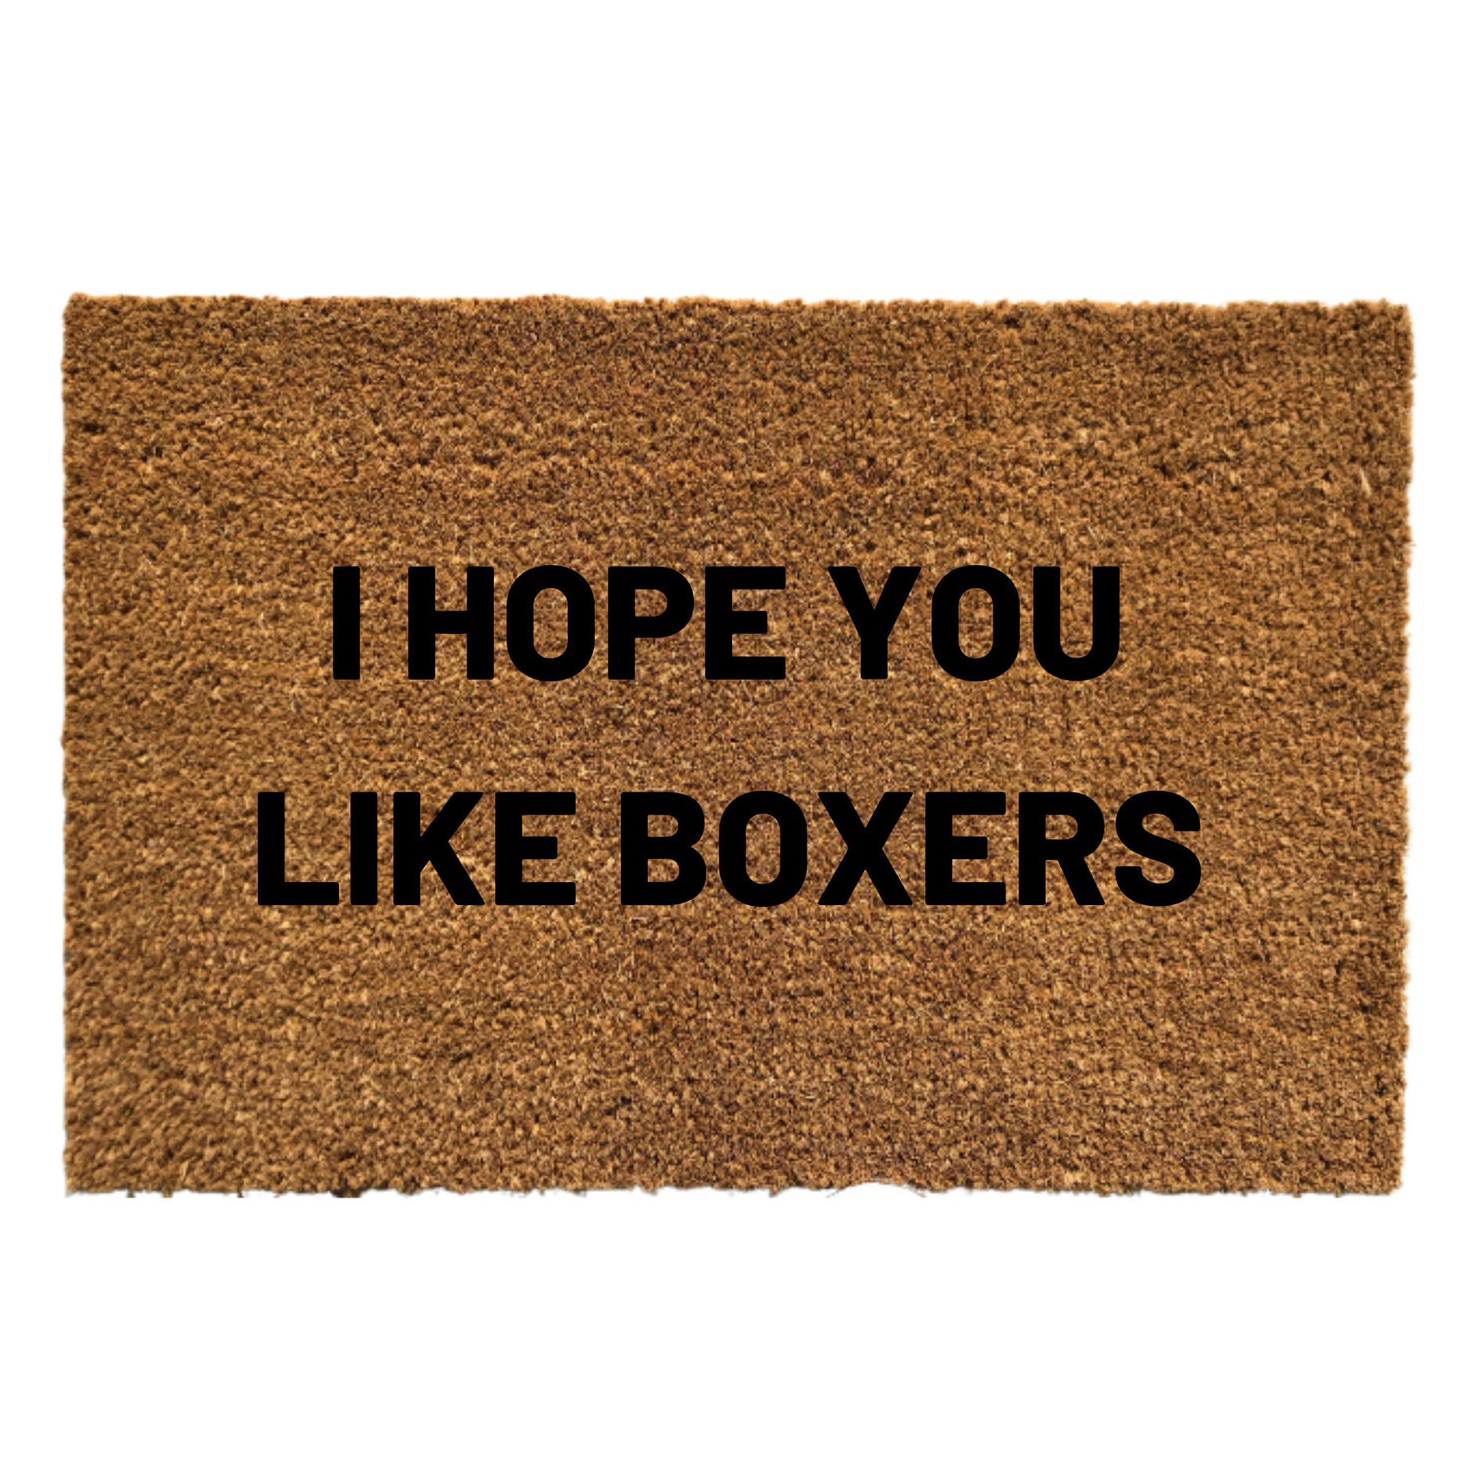 I Hope You Like Boxers Door Mat via MinorLess on Etsy